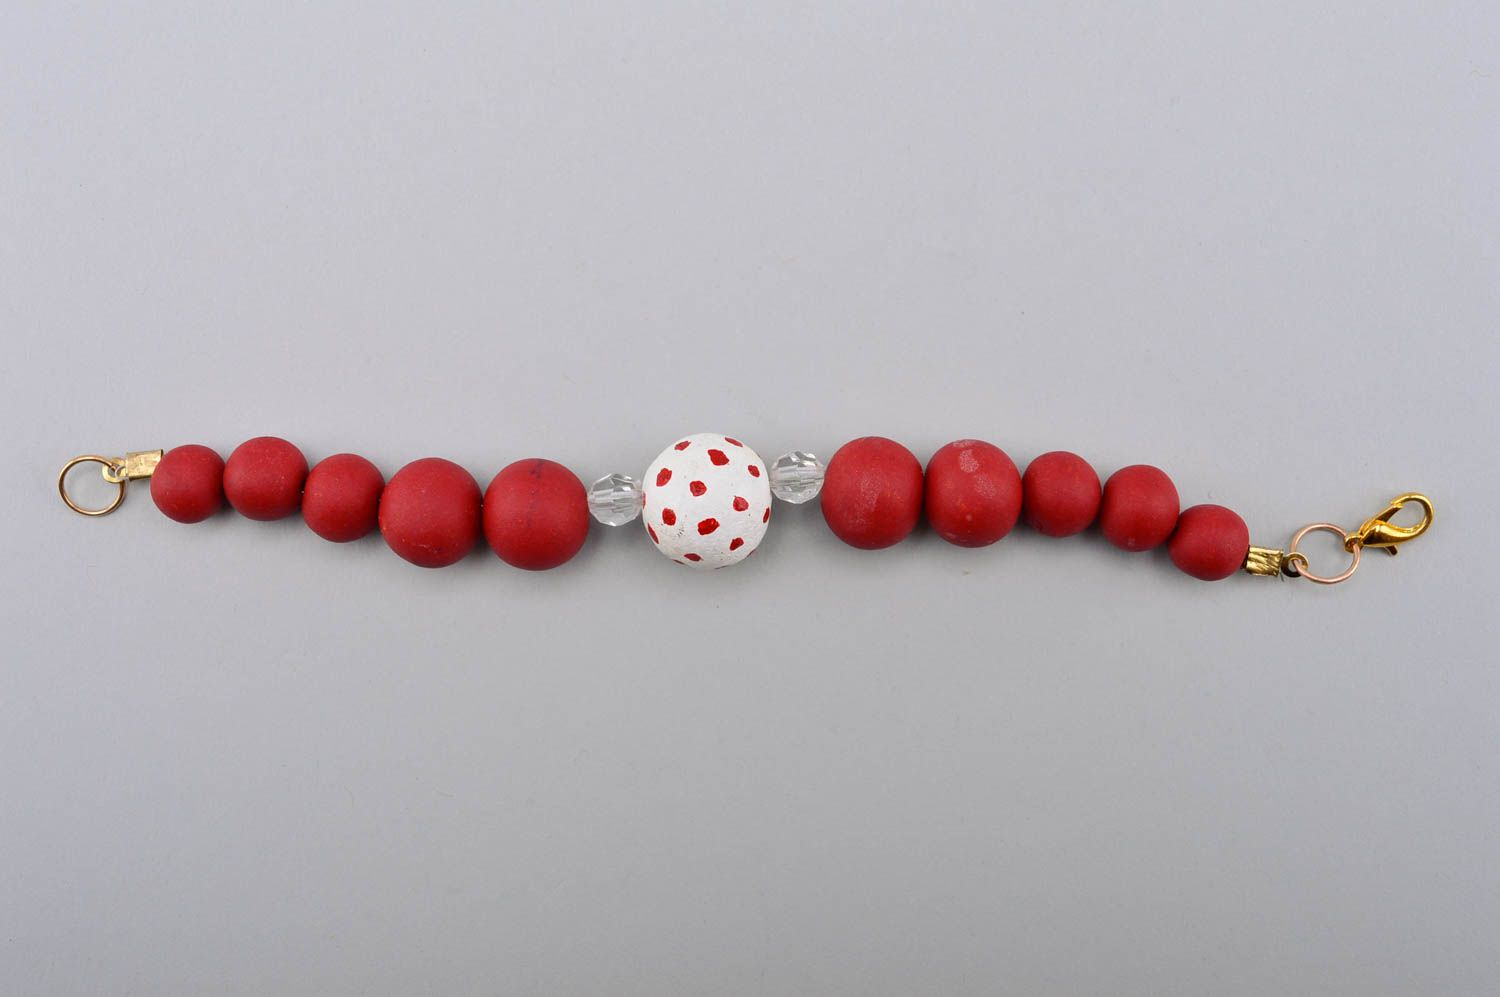 Handmade beautiful bracelet plastic red bracelet stylish wrist accessory photo 4